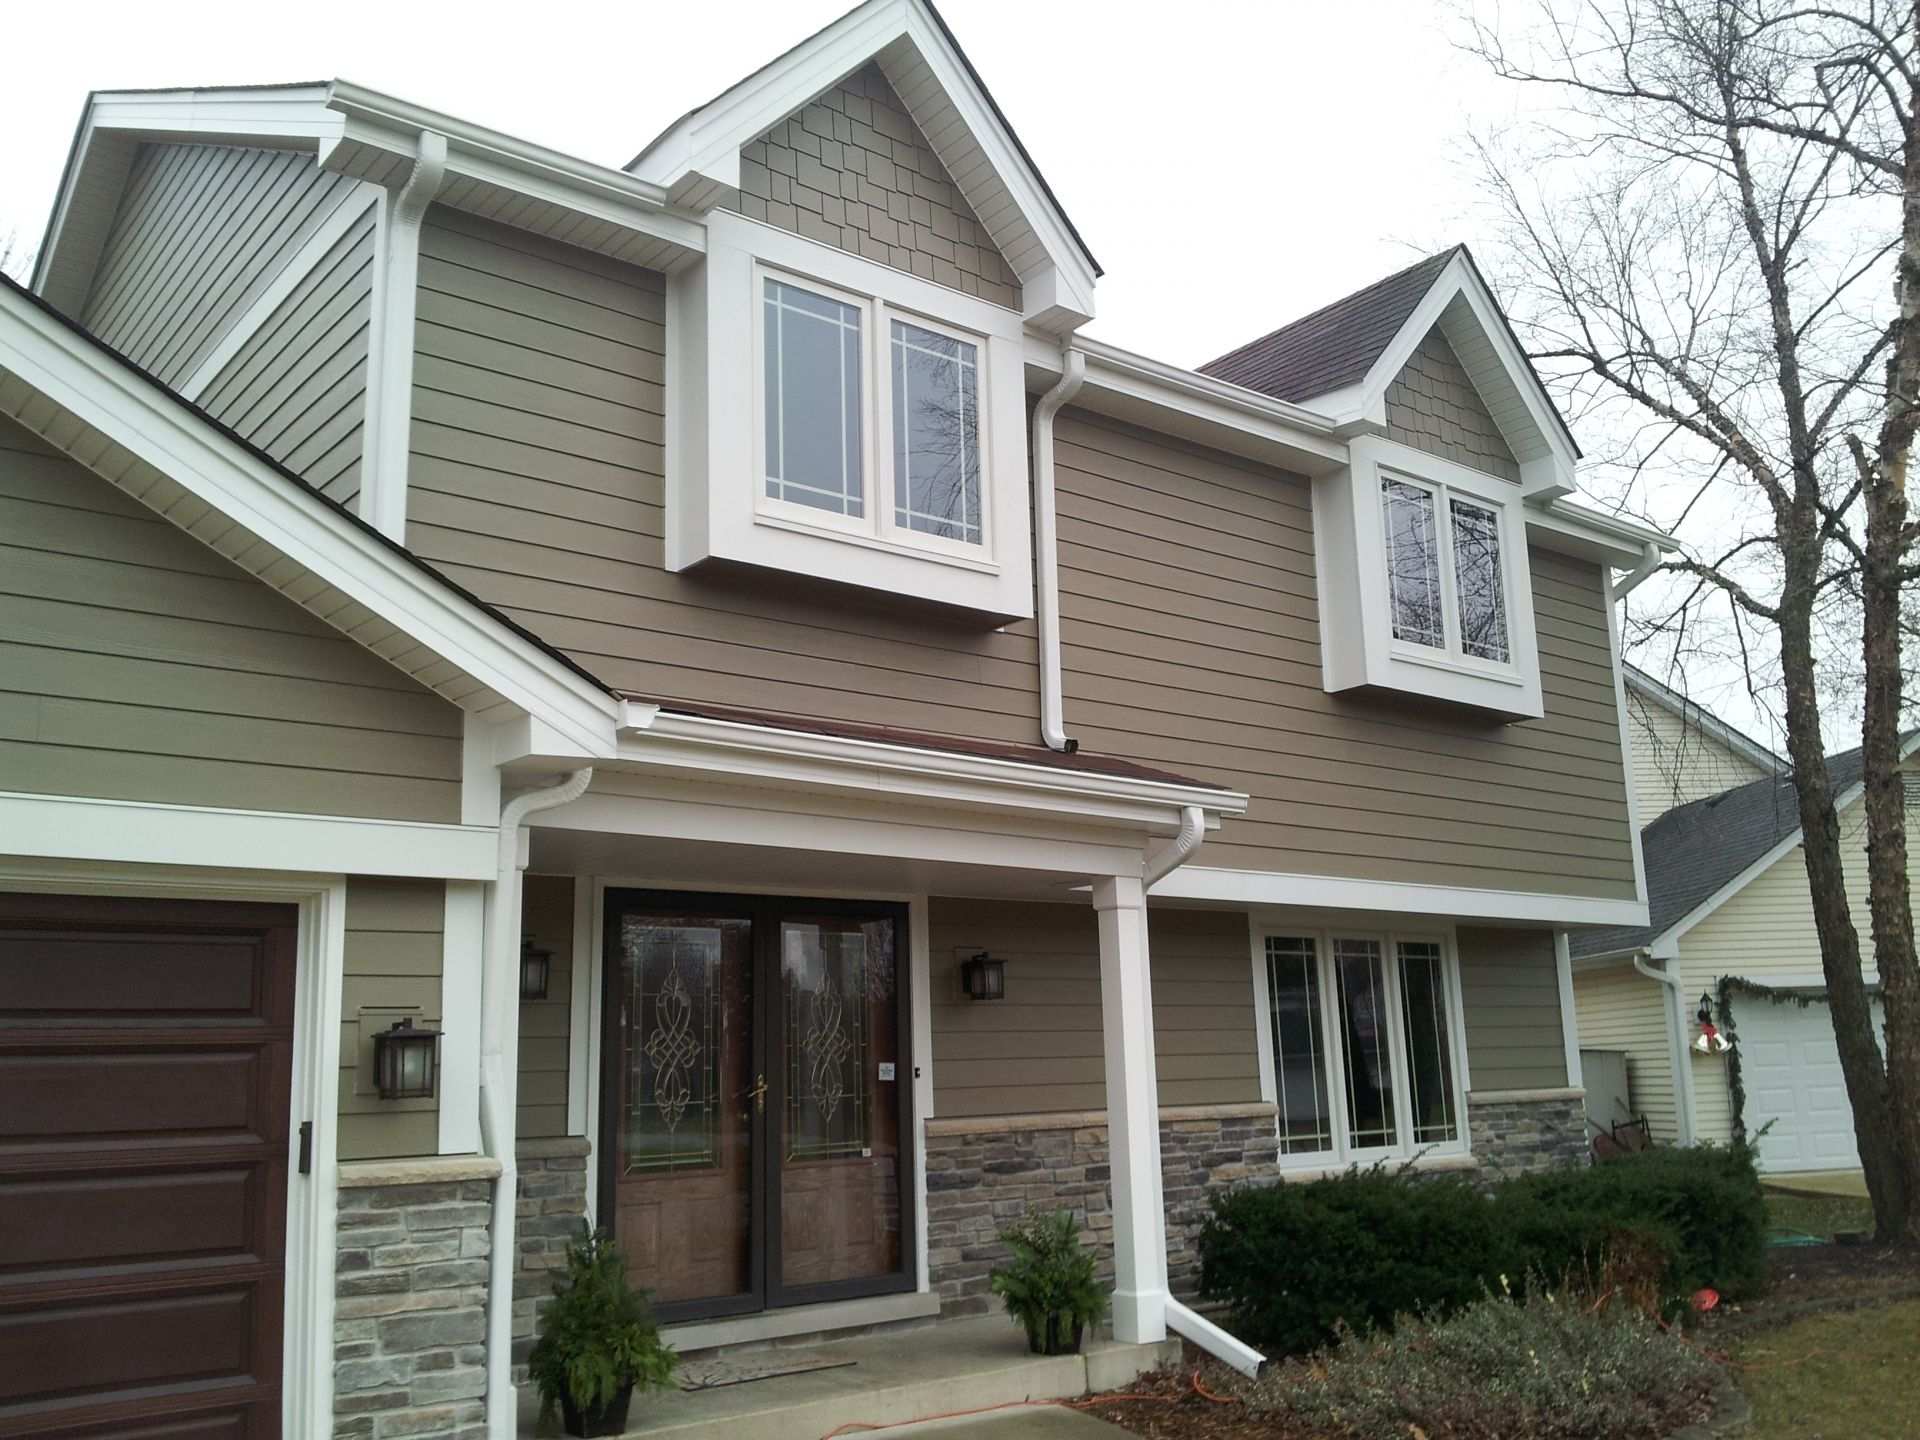 Hardieplank hardieshingle siding woodstock brown for Hardiplank home designs